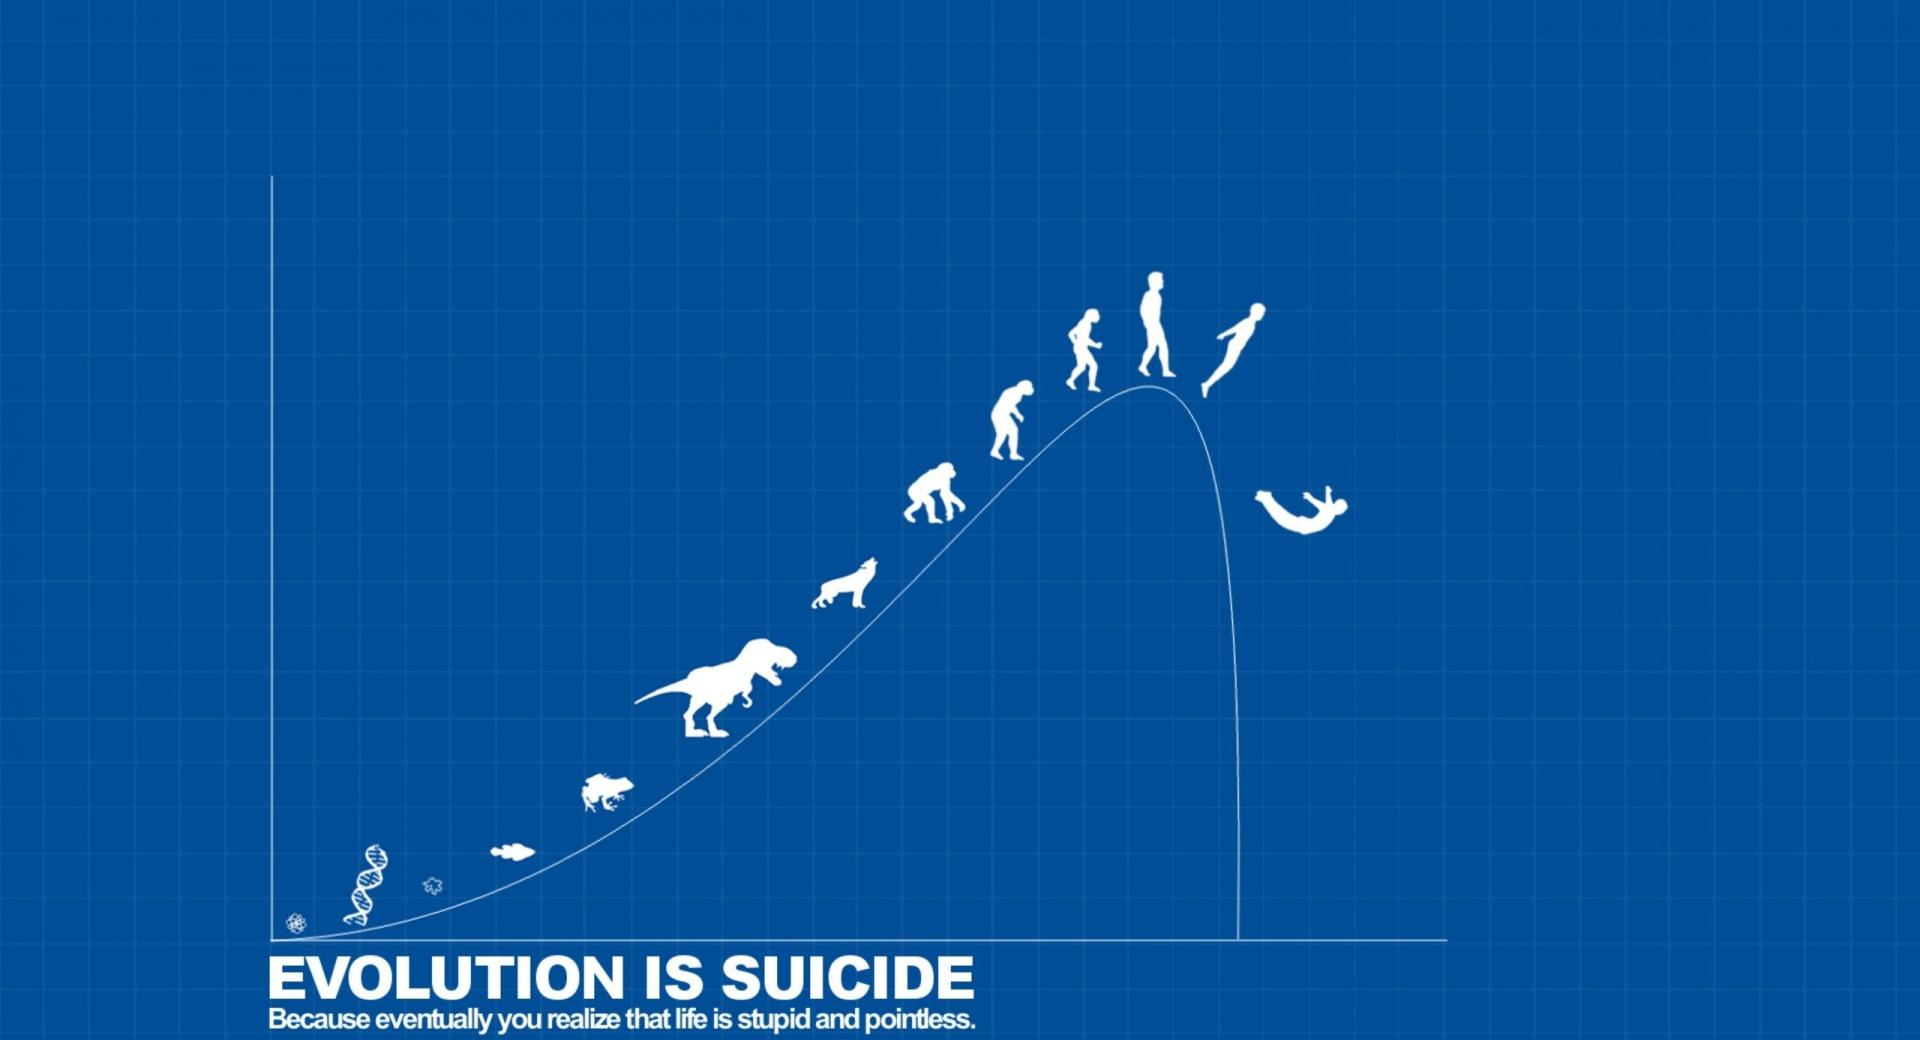 Evolution is Suicide at 640 x 1136 iPhone 5 size wallpapers HD quality